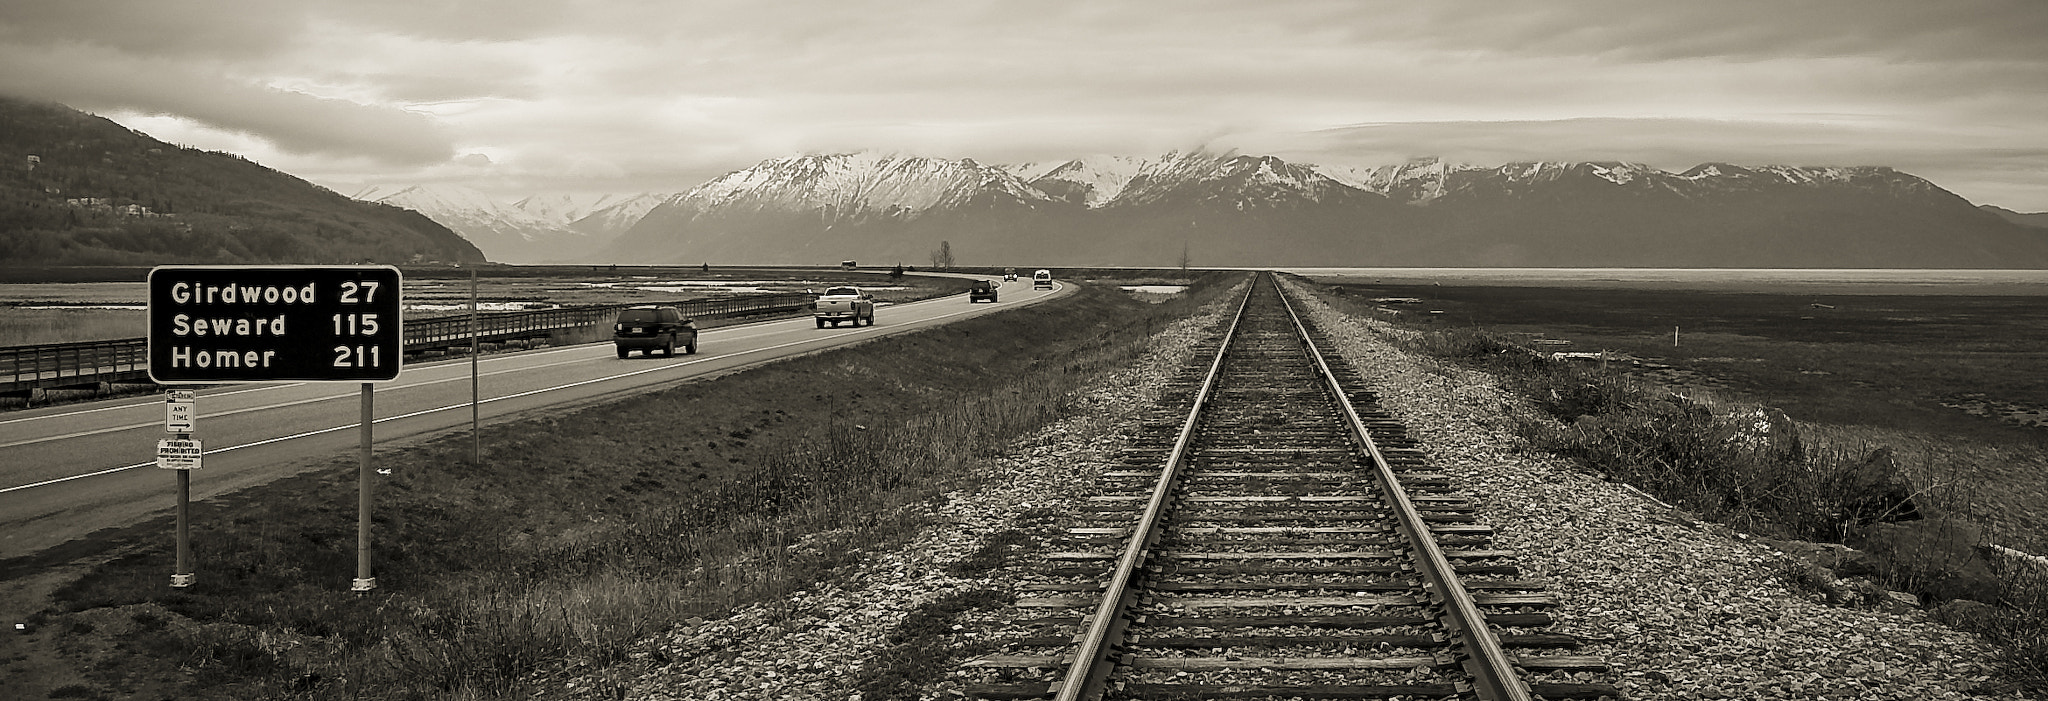 Photograph Alaska Railroad by Jason Moore on 500px